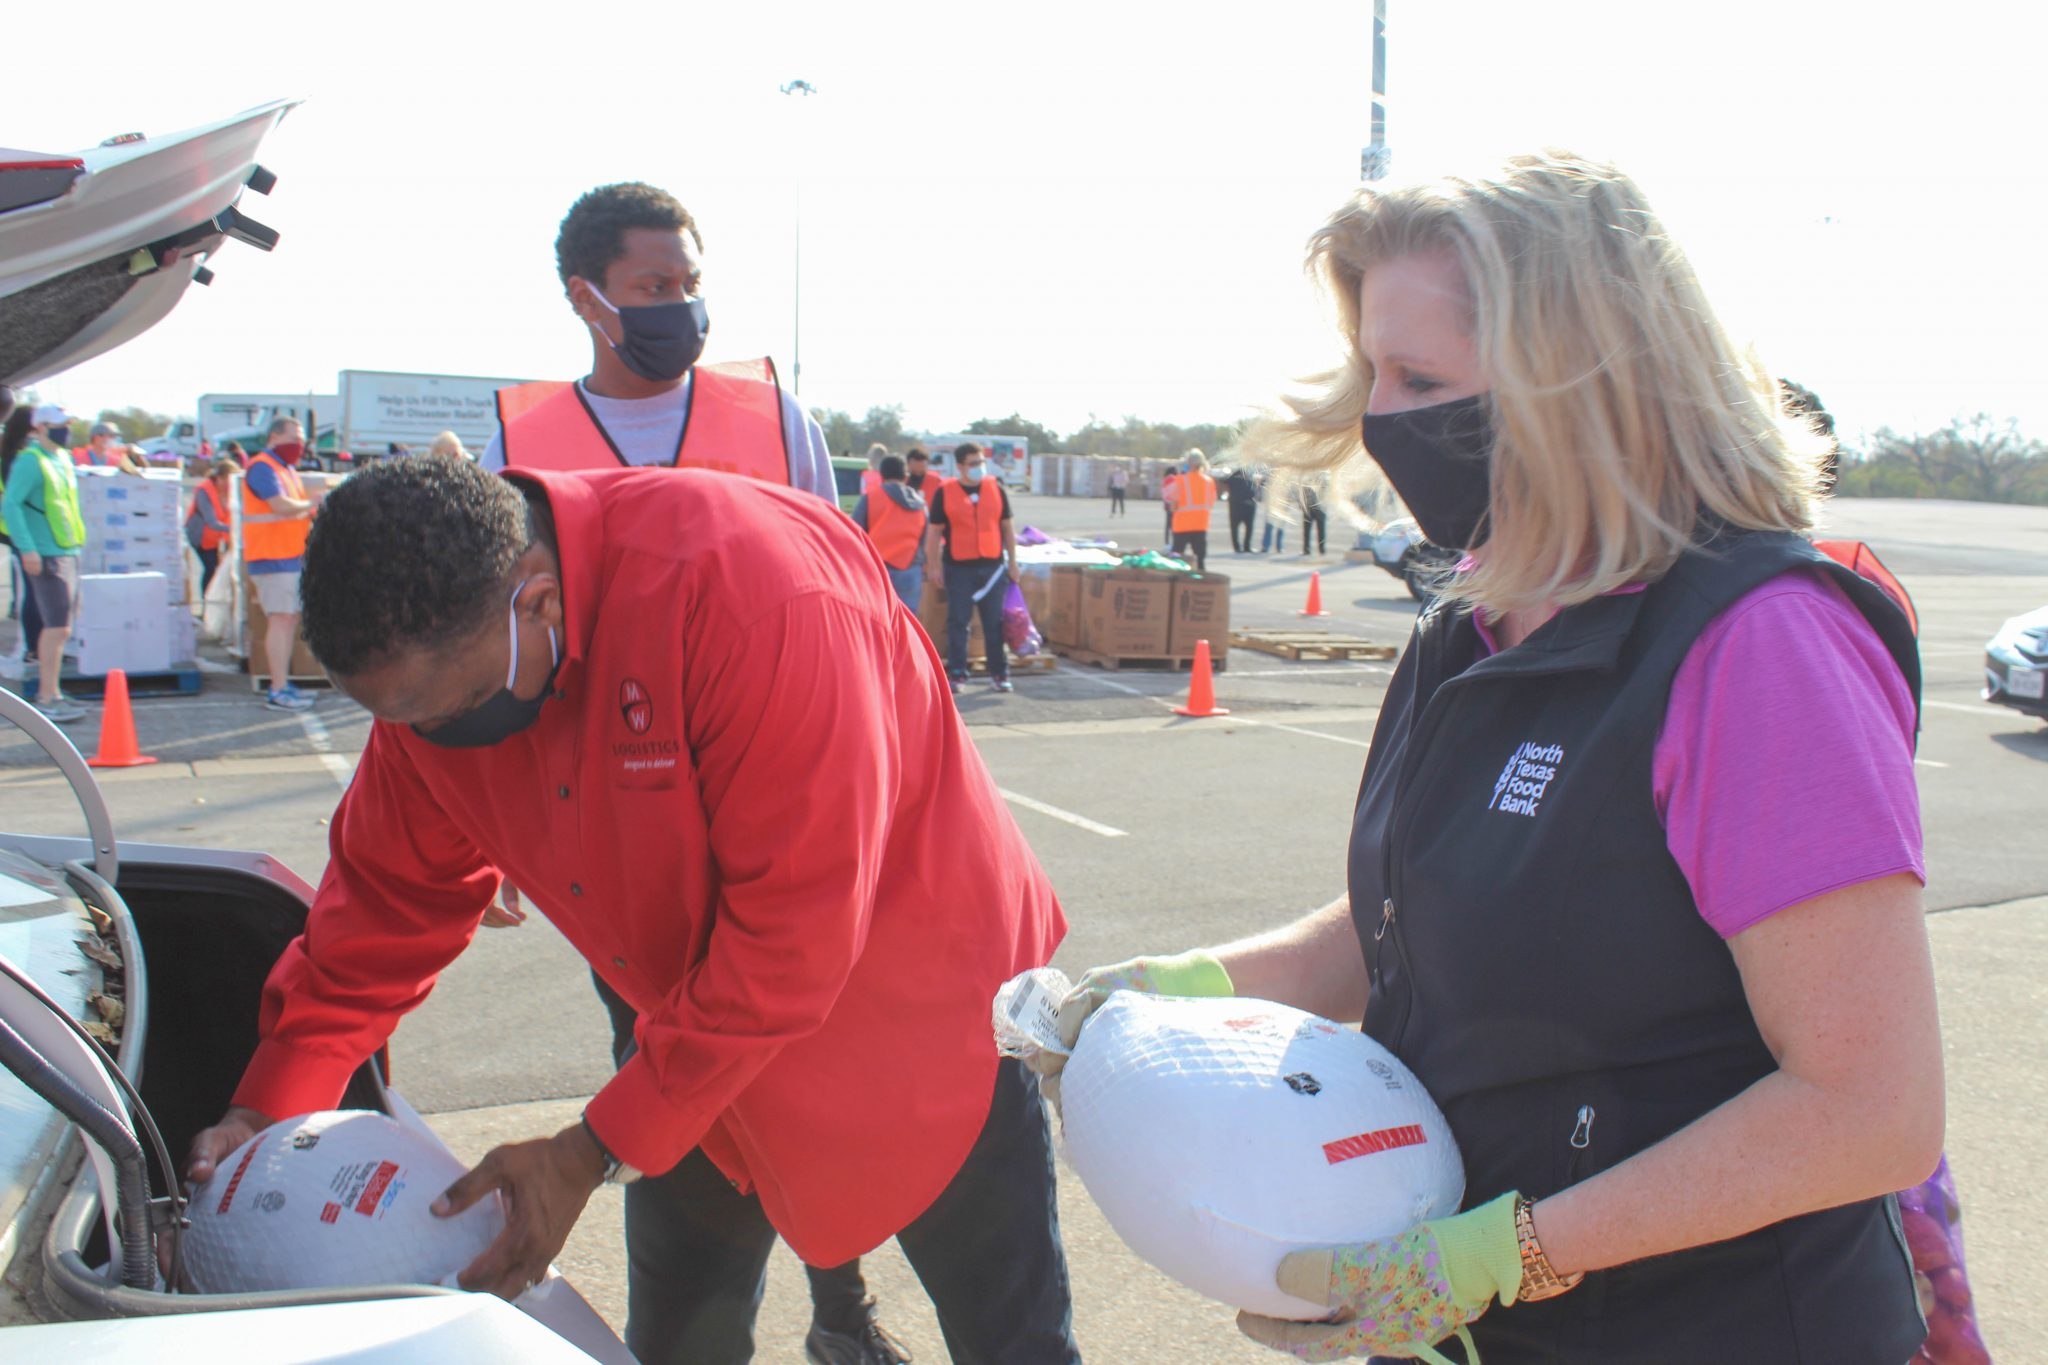 North Texas Food Bank President and CEO Trisha Cunningham helps load turkeys alongside Mitchell Ward with MWL Cares at The Big Give mobile distribution at Fair Park on Nov. 14, 2020. | Photo by Liana Solis